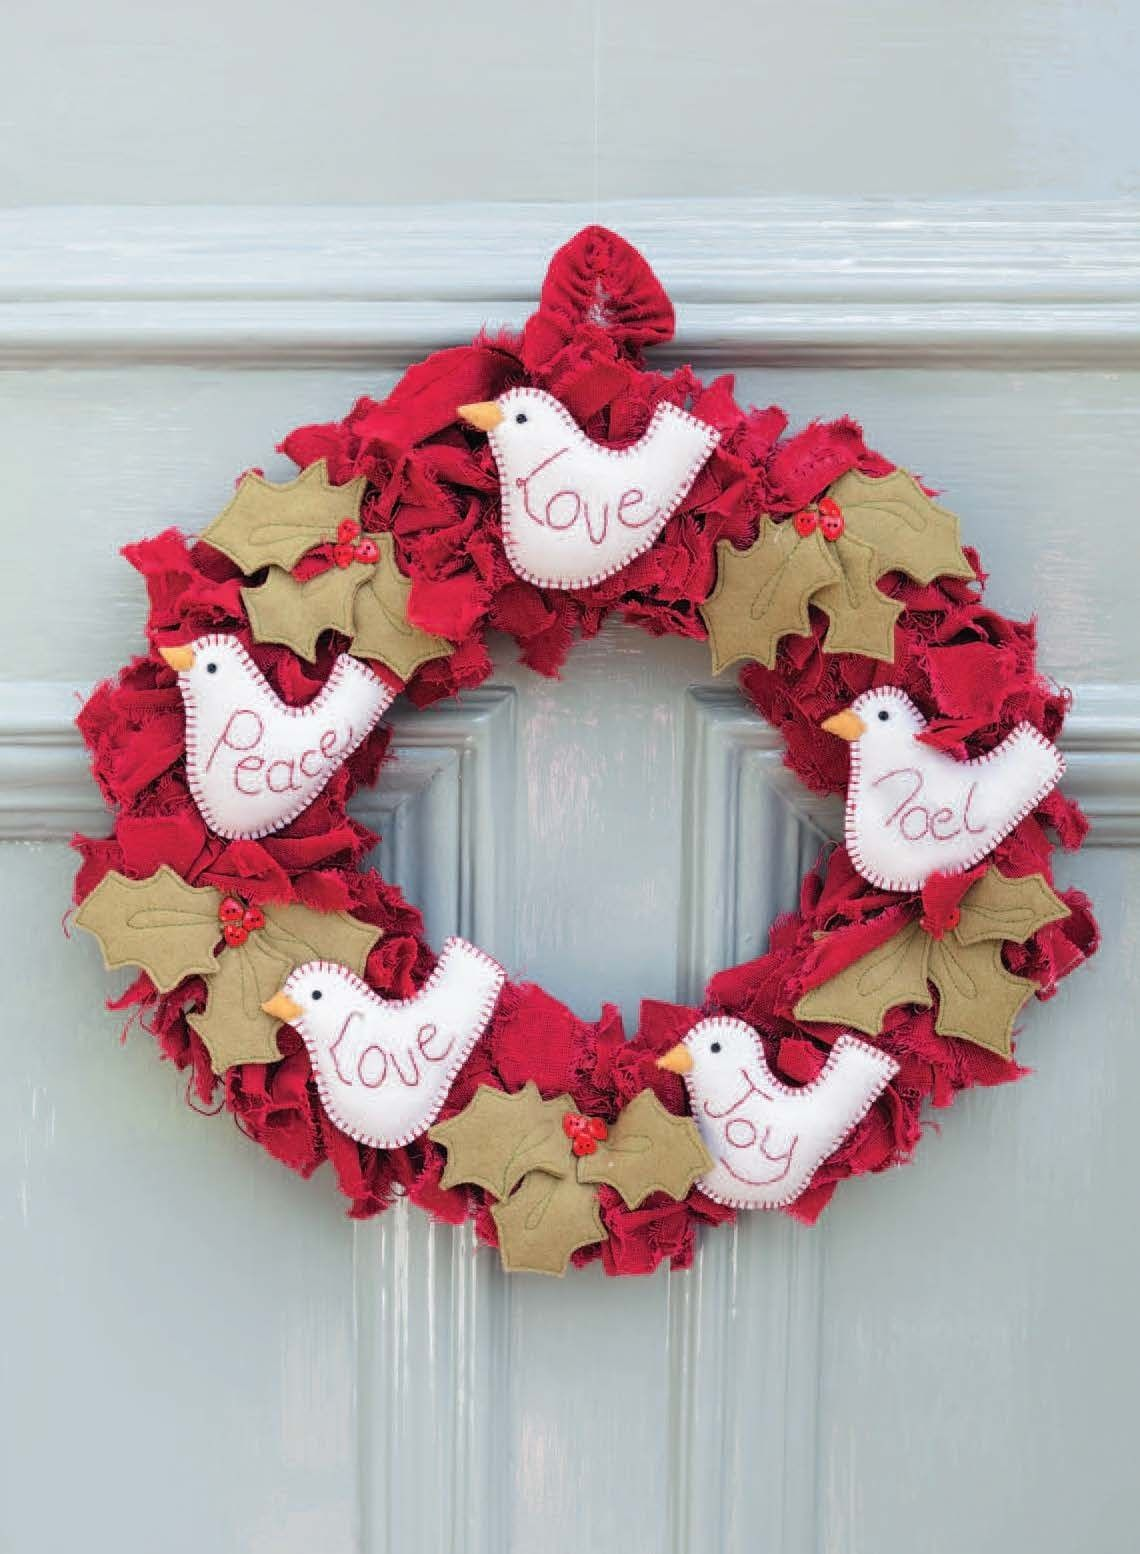 This traditionally styled shaggy wreath decorated with doves